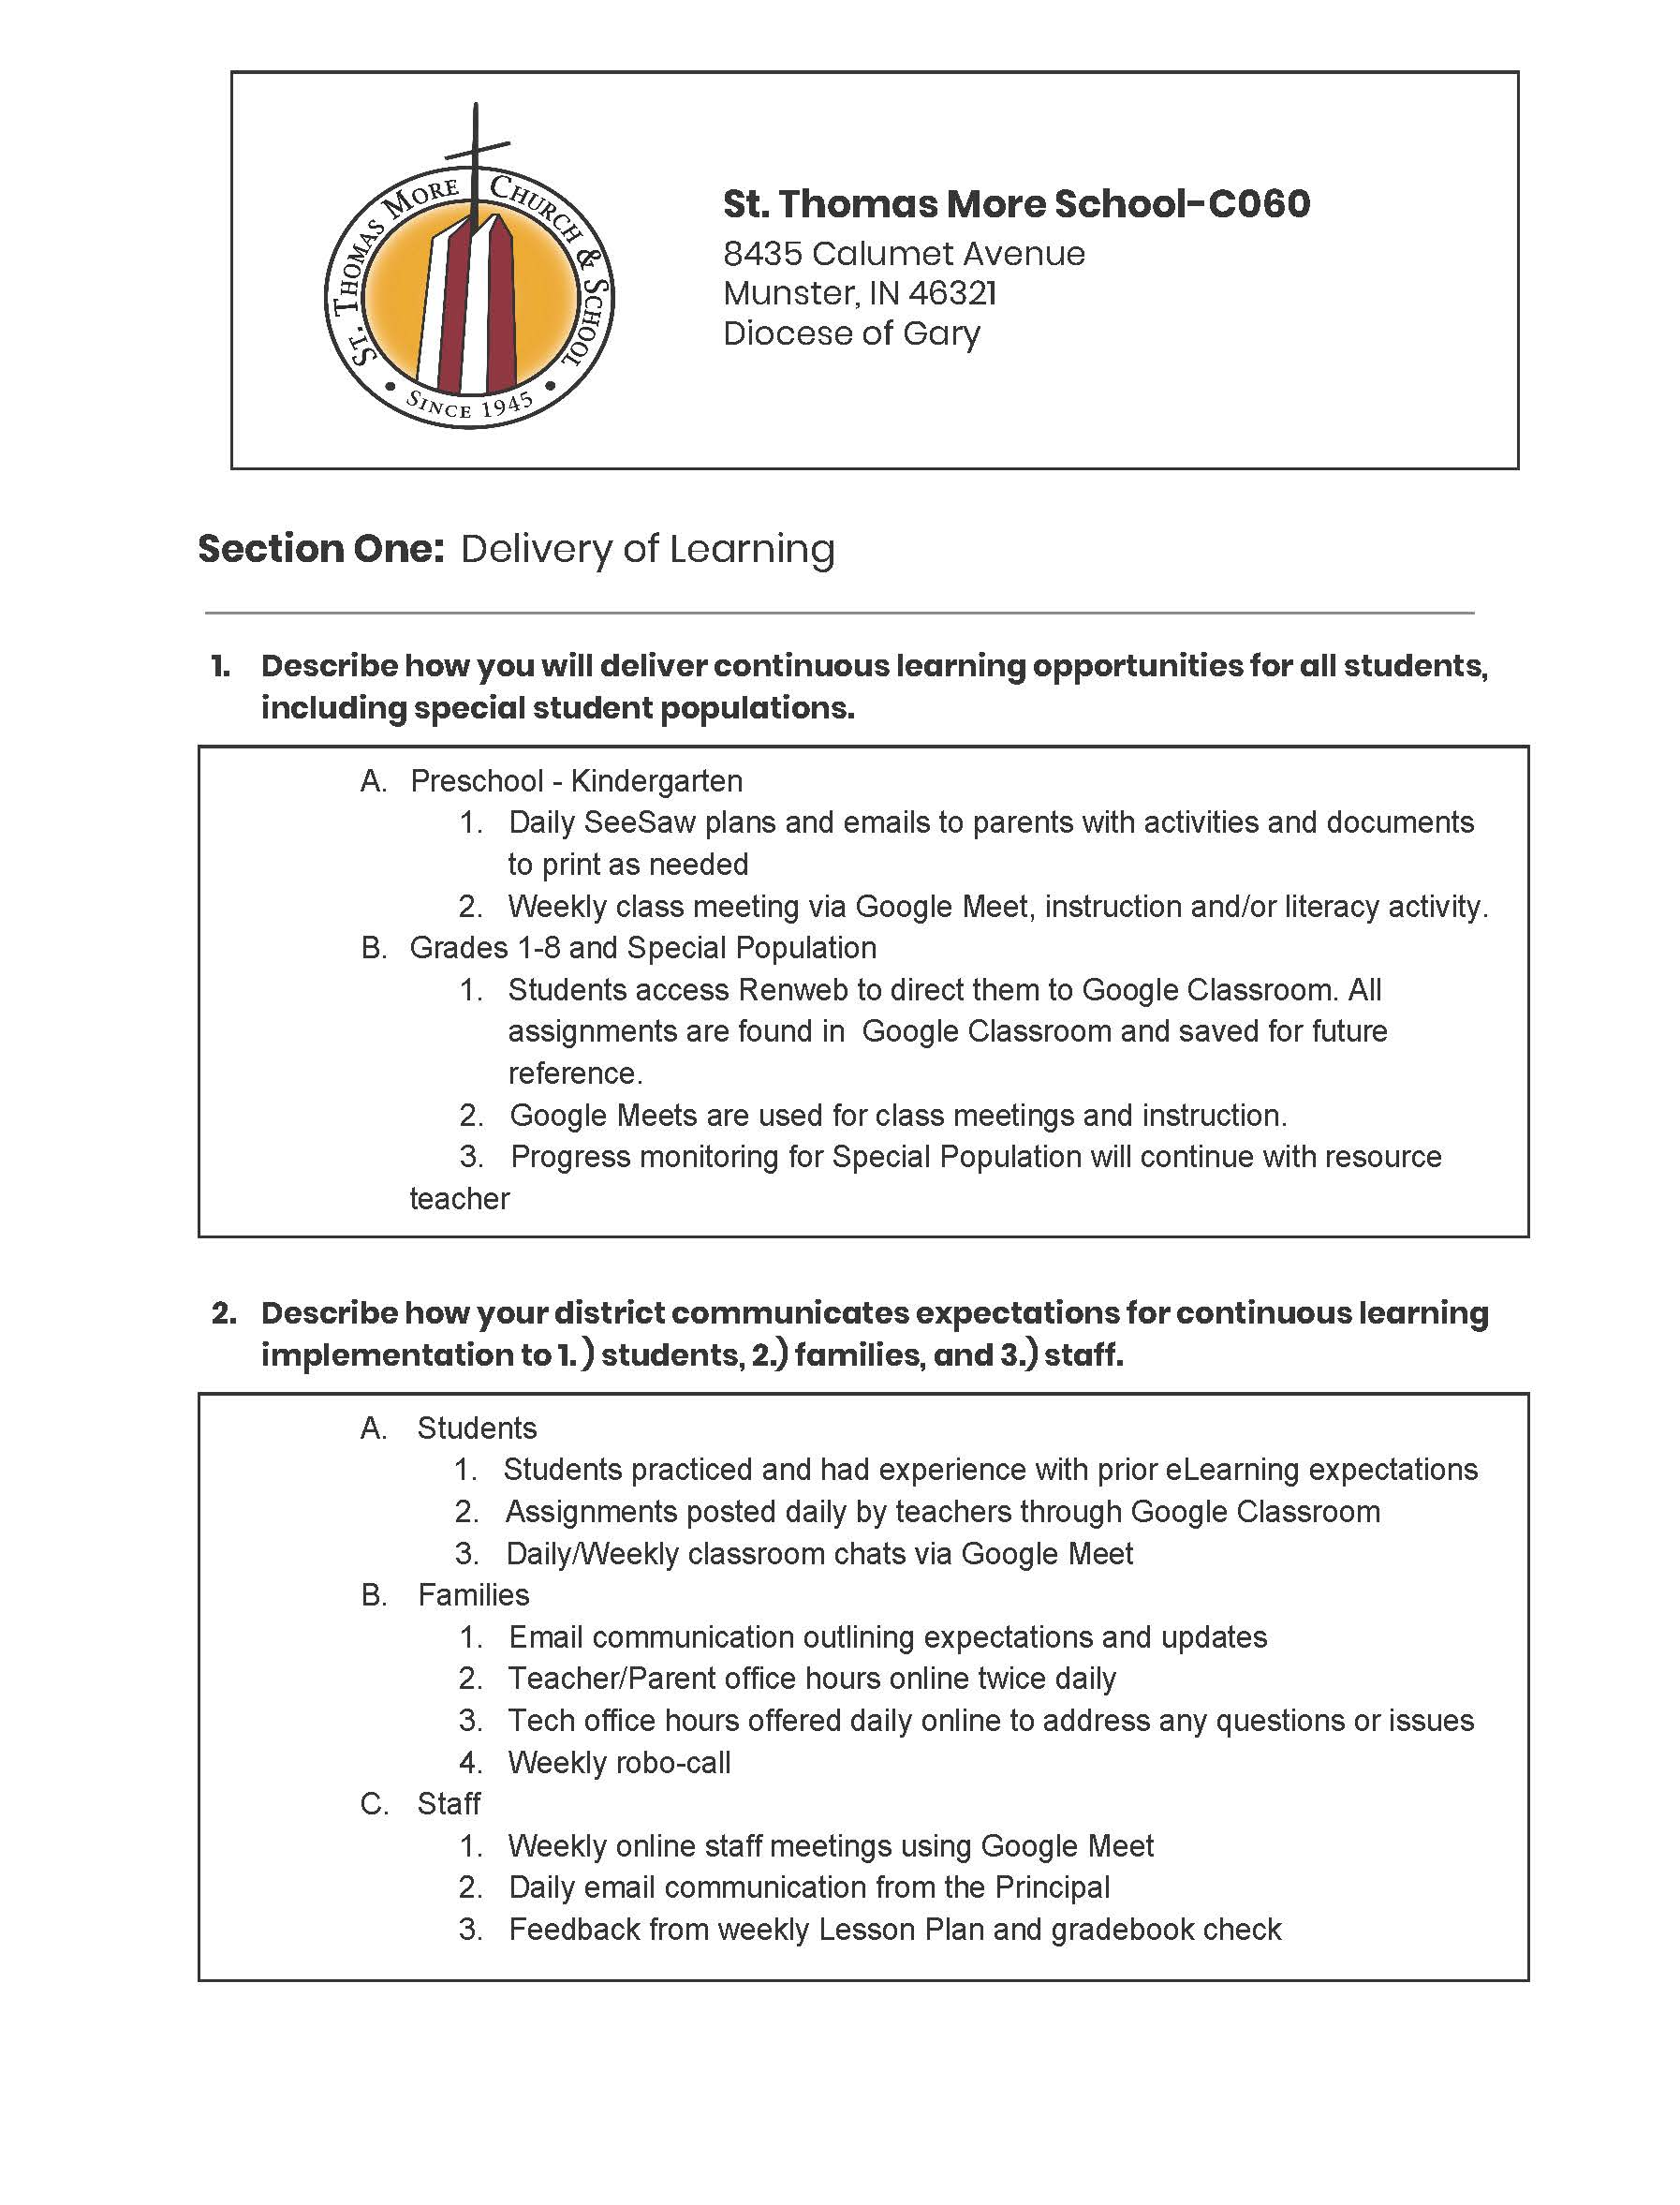 Continuous Learning Plan Page 1